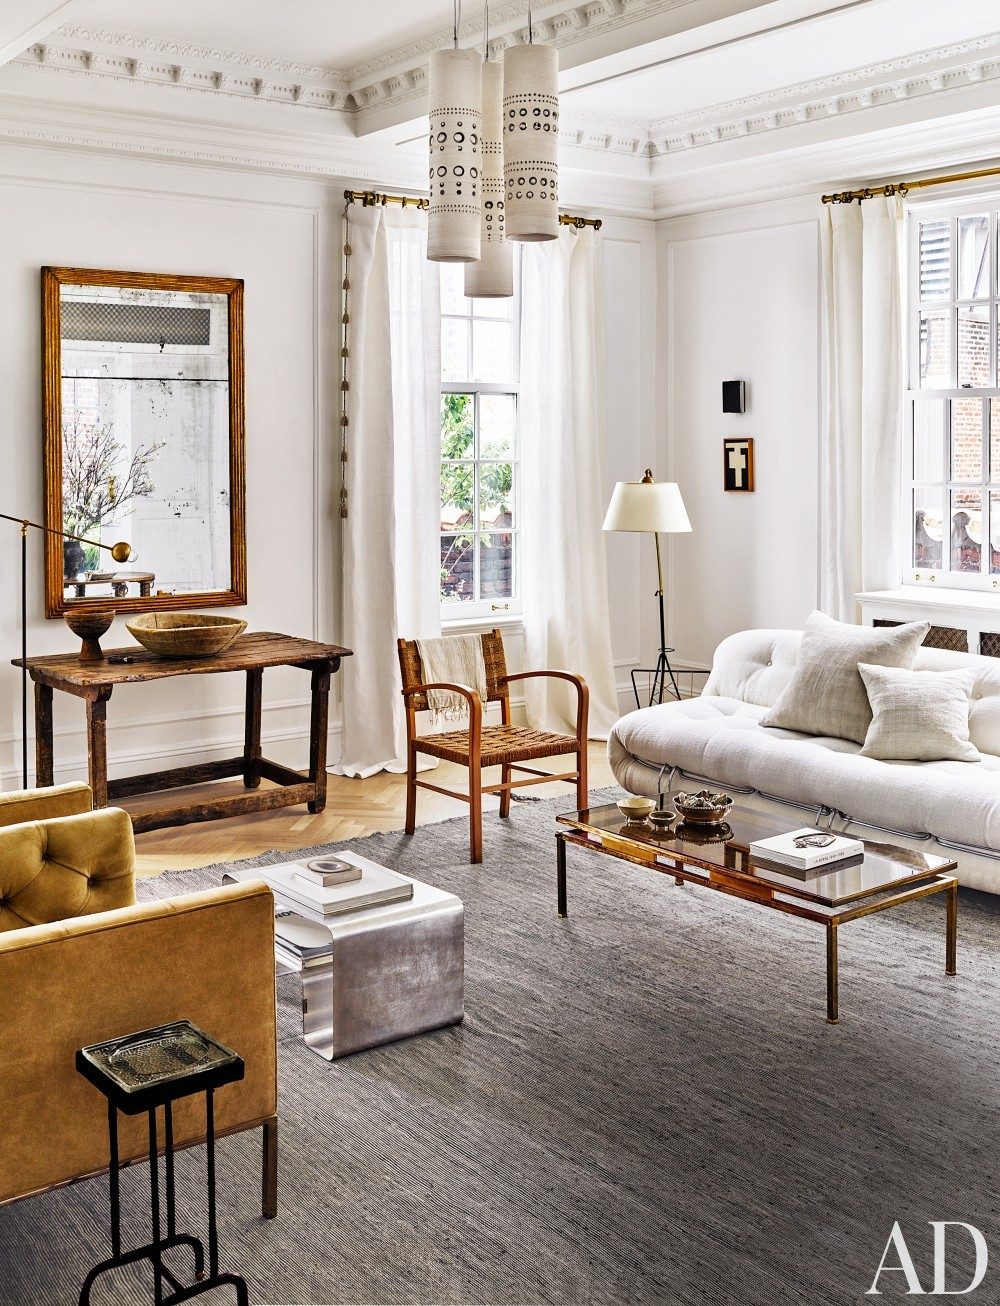 Living Room by Nate Berkus and Jeremiah Brent in New York, NY